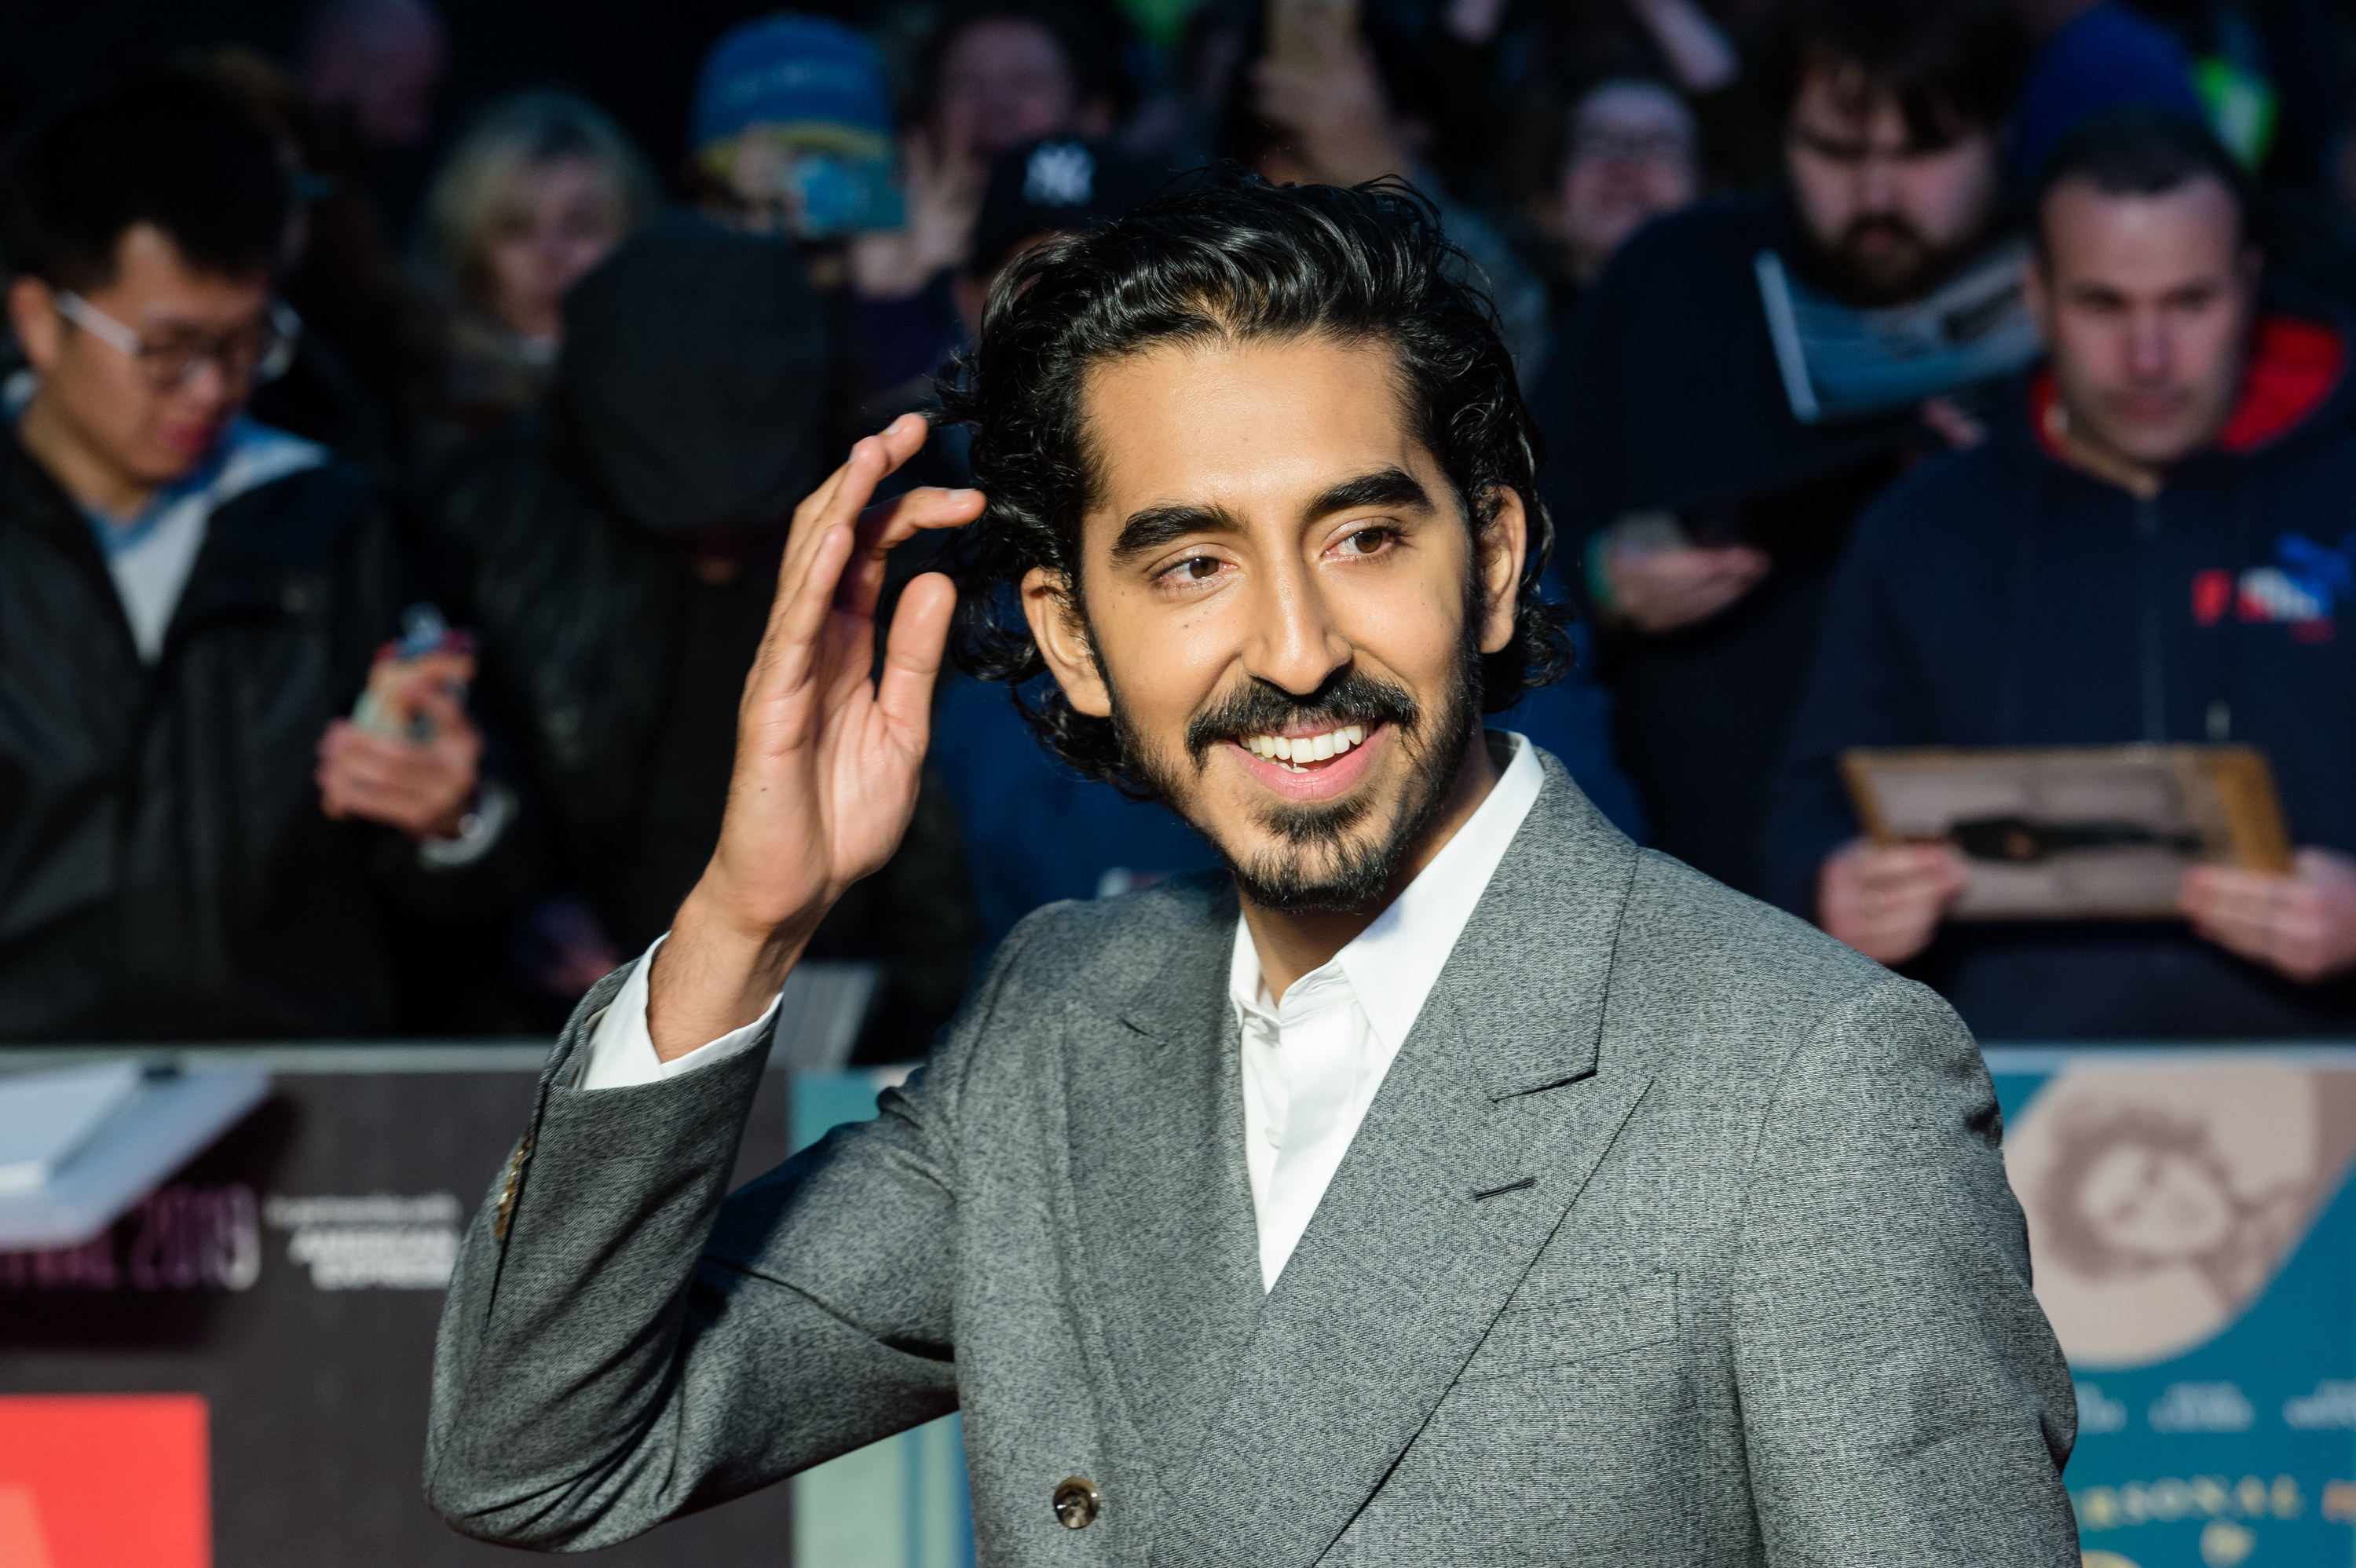 Dev Patel is photographed at a film premiere